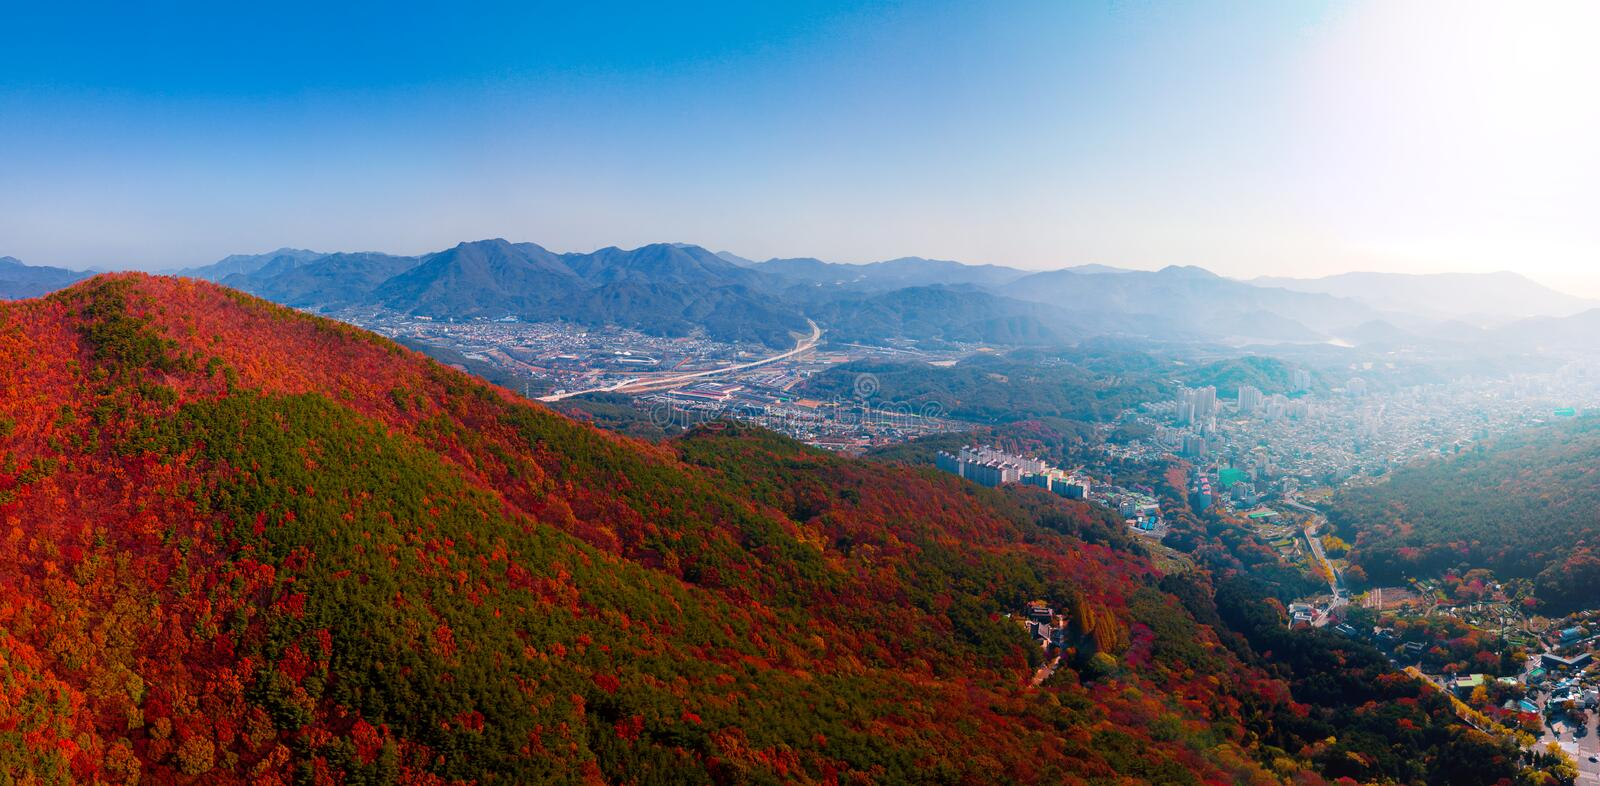 Aerial view of Beomeosa temple in Busan South korea.Image consists of temple located between the mountain covered with colorful royalty free stock photo